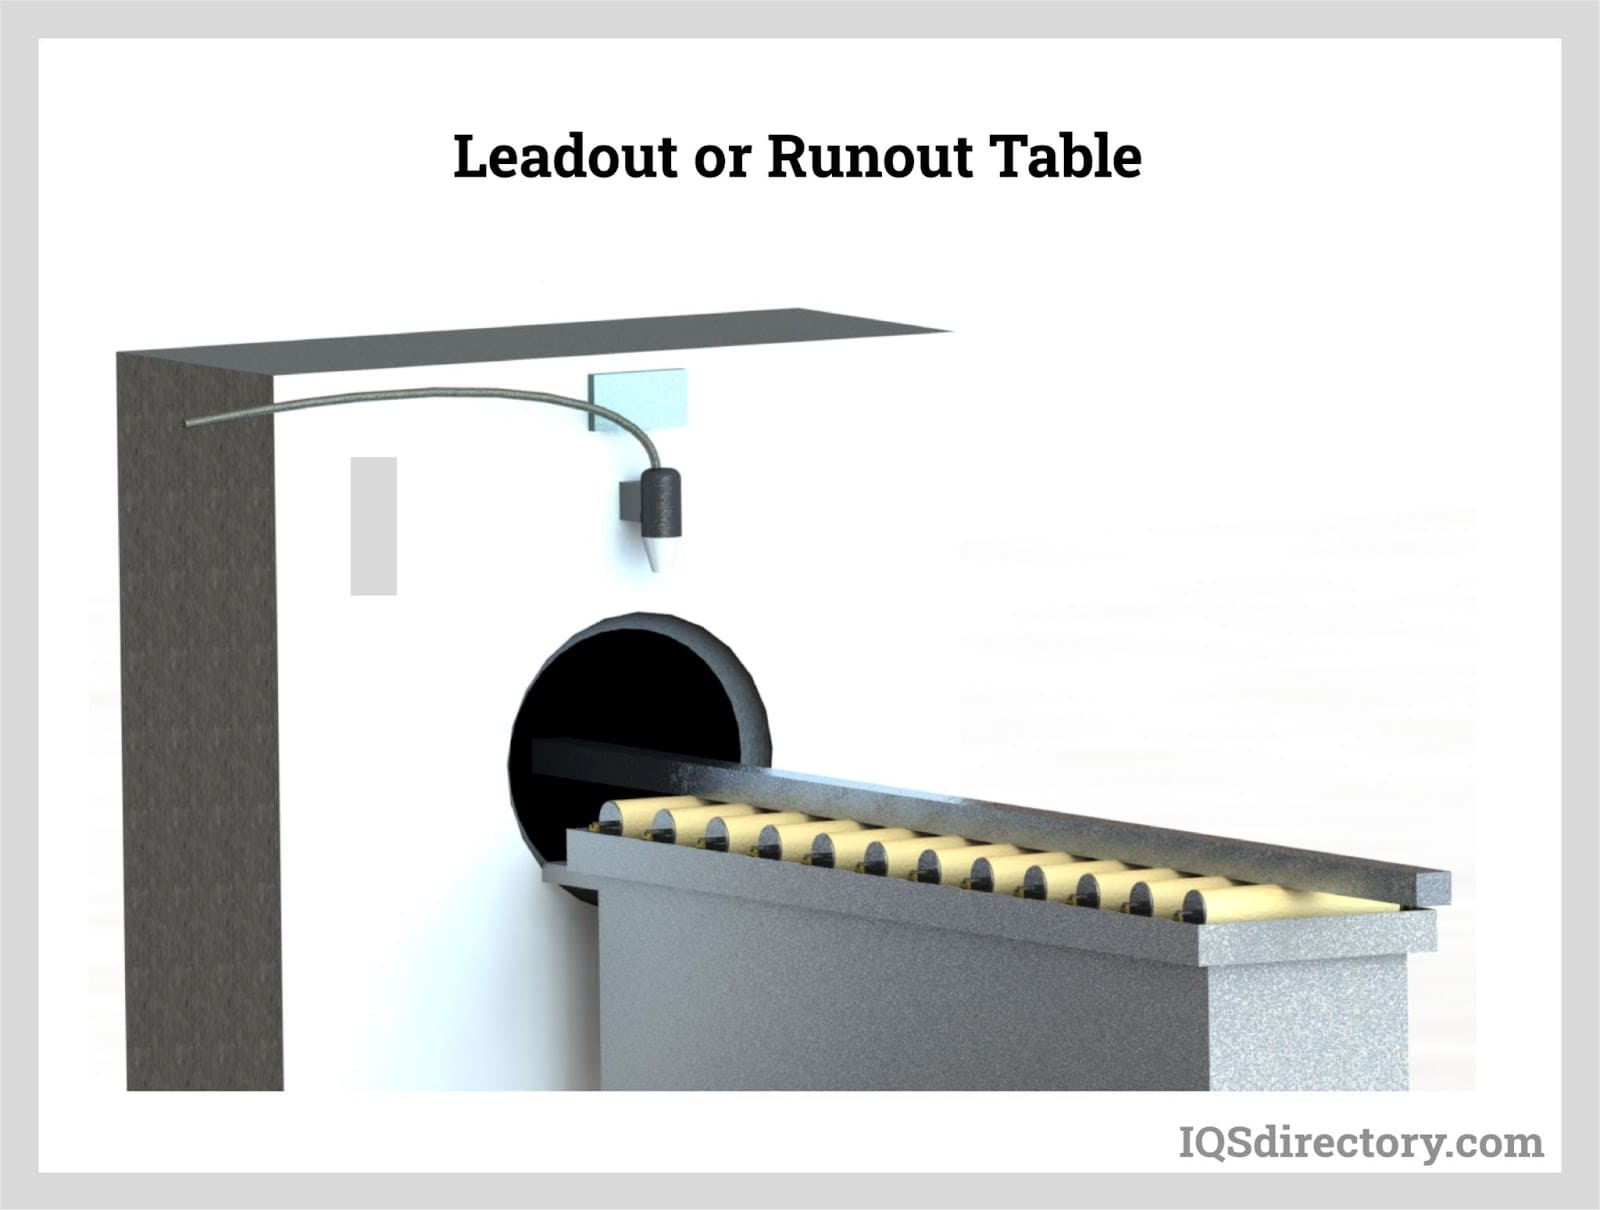 Leadout or Runout Table